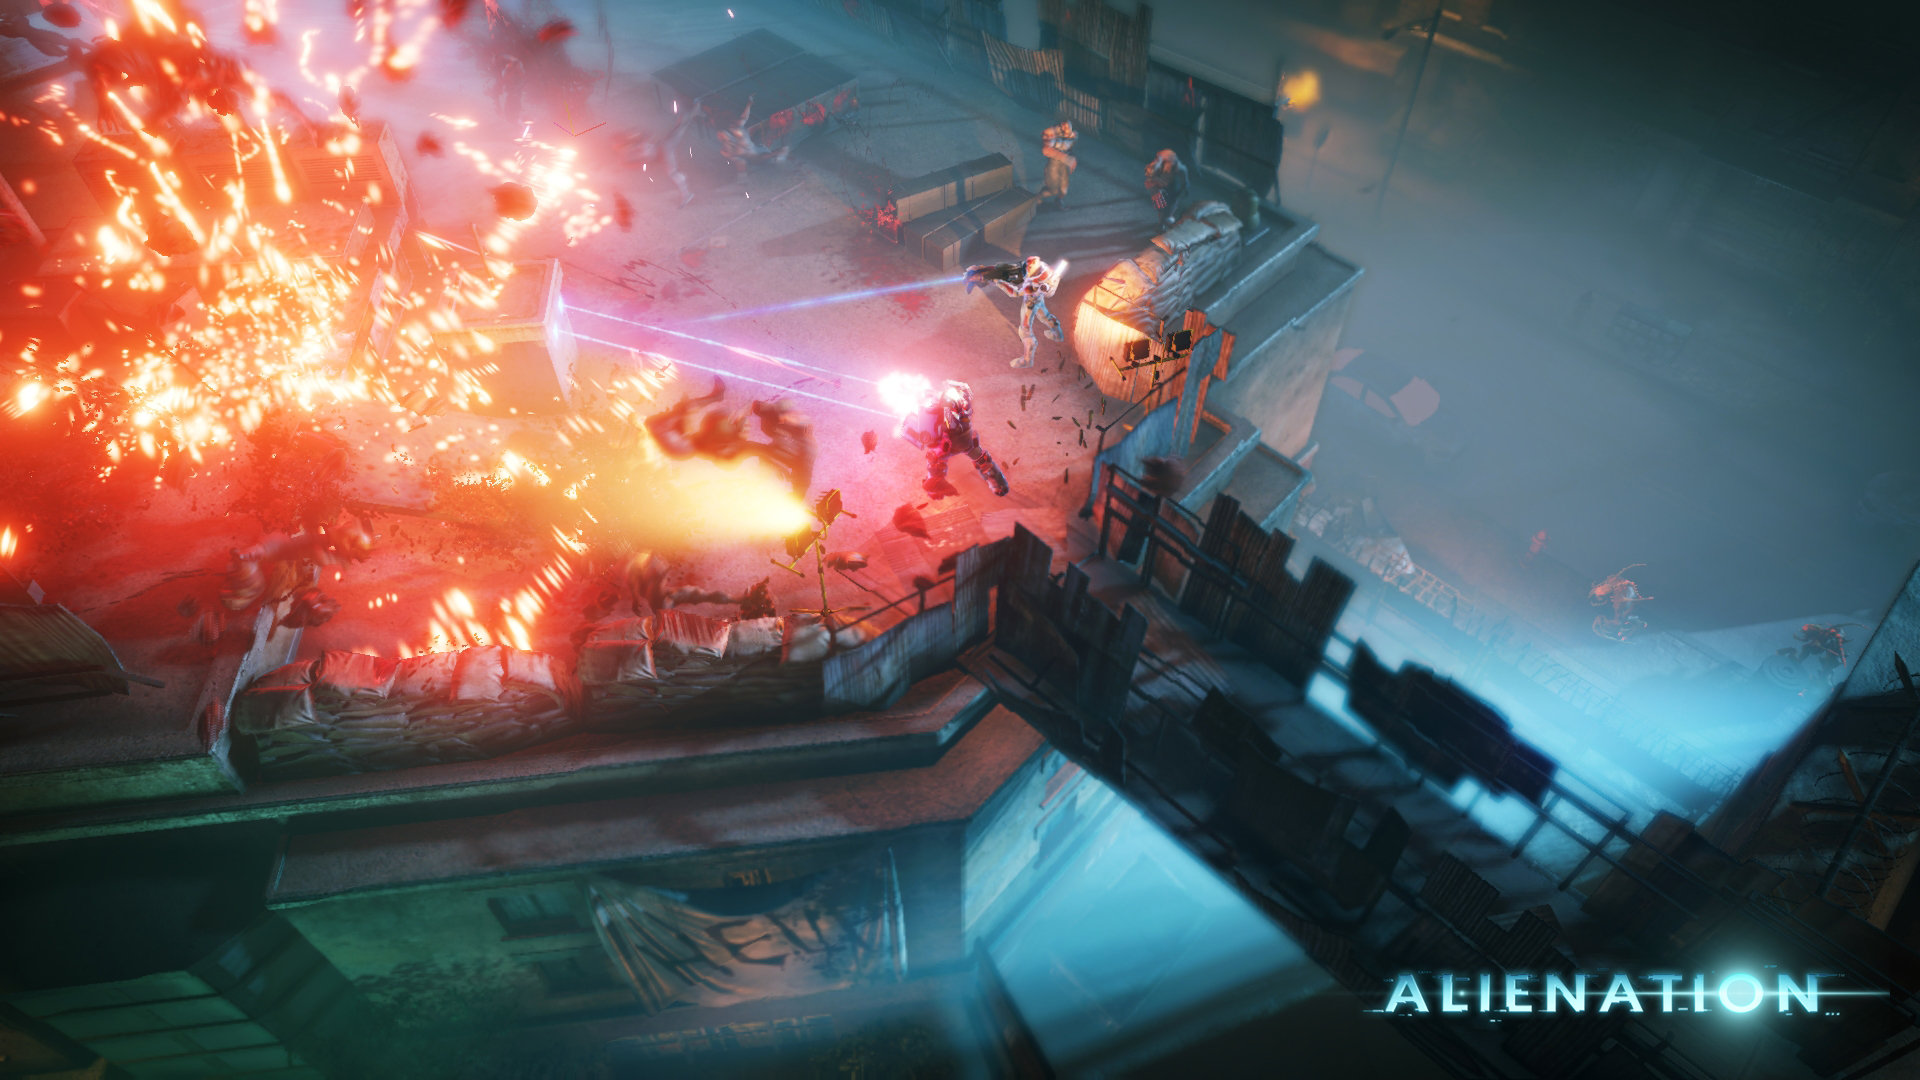 alienation-screen-04-ps4-us-18mar16.jpg